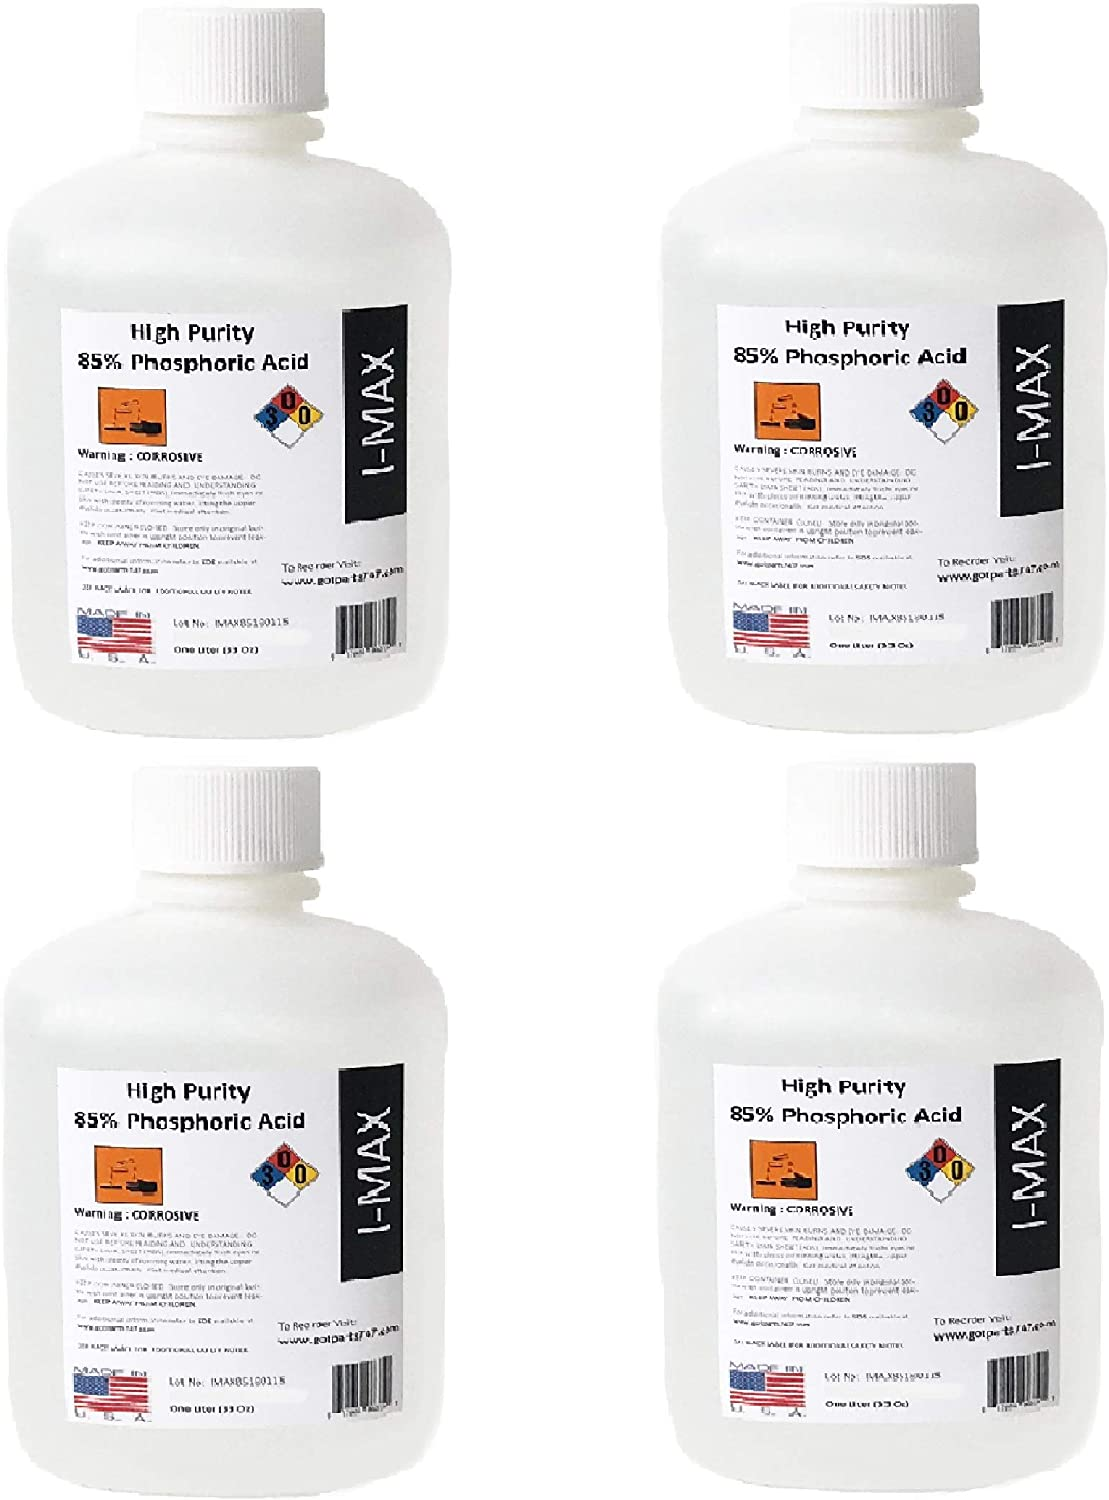 4 x 1000 ml (More than One Gallon) 4 Liters Phosphoric Acid 85% Food Grade, Rust Remover, pH Down - High Purity Phos Acid - More than 4 Quarts - Made in the USA